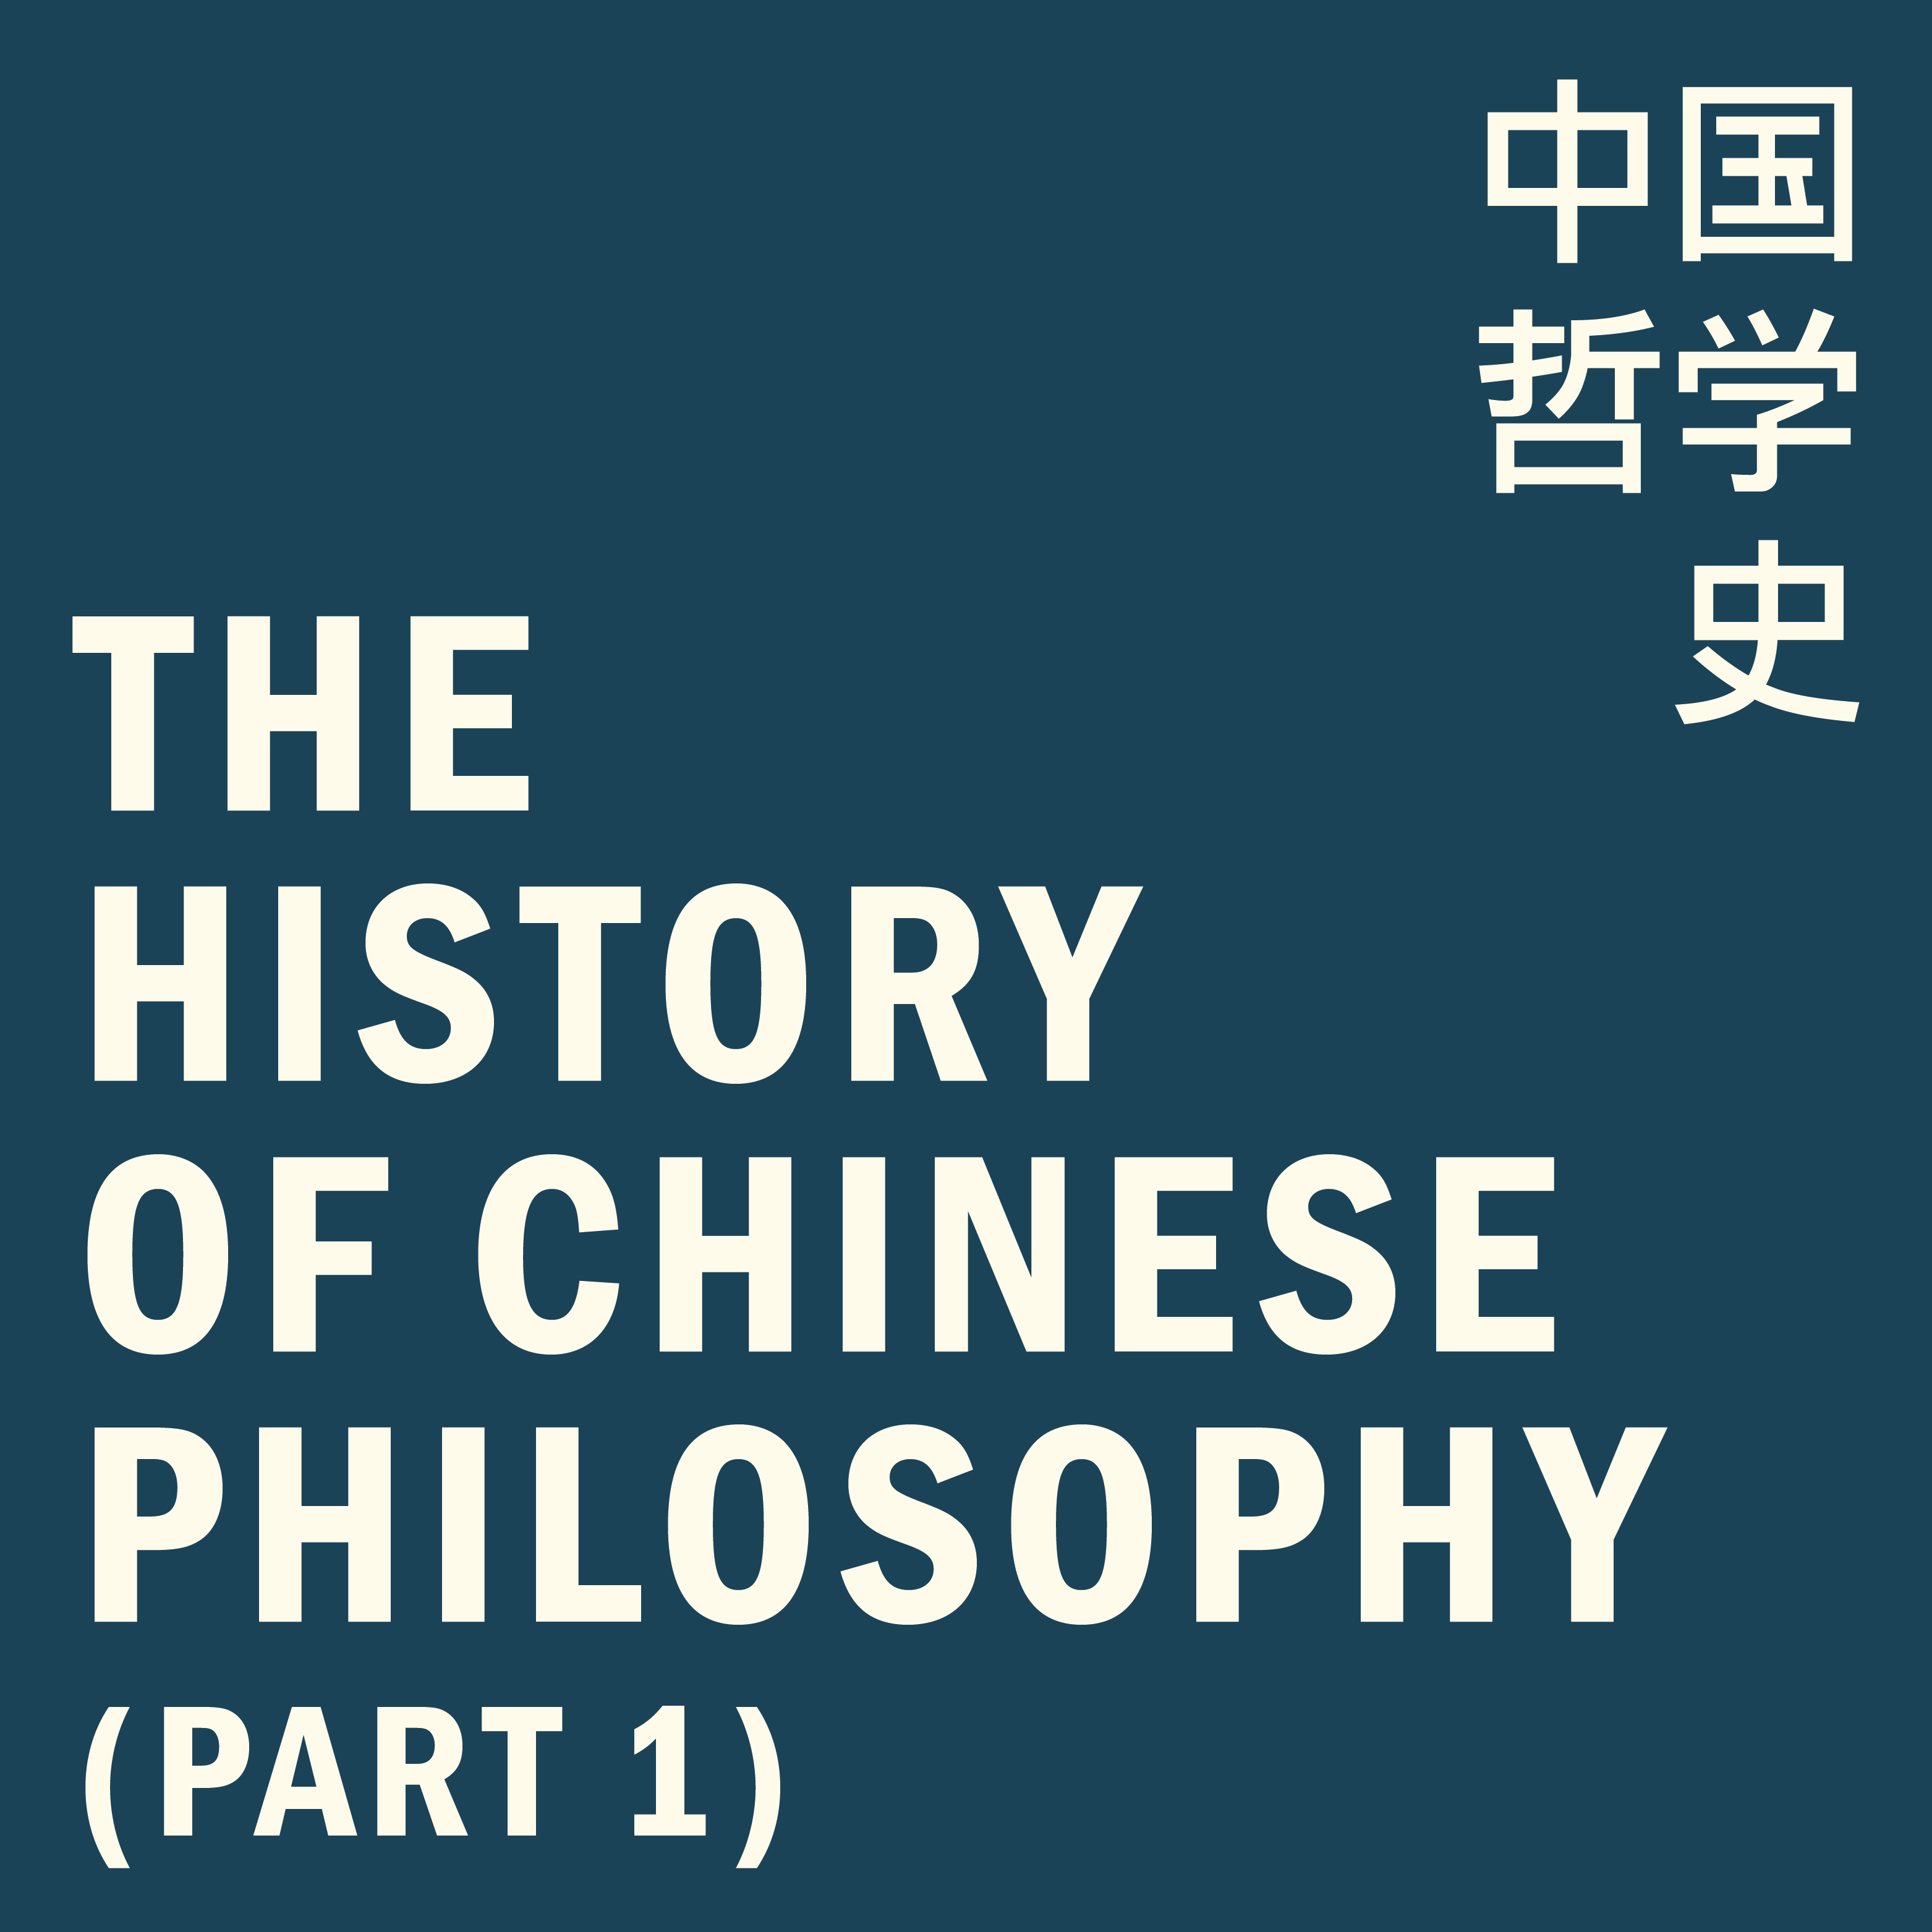 CHP-184-The History of Chinese Philosophy Part 1